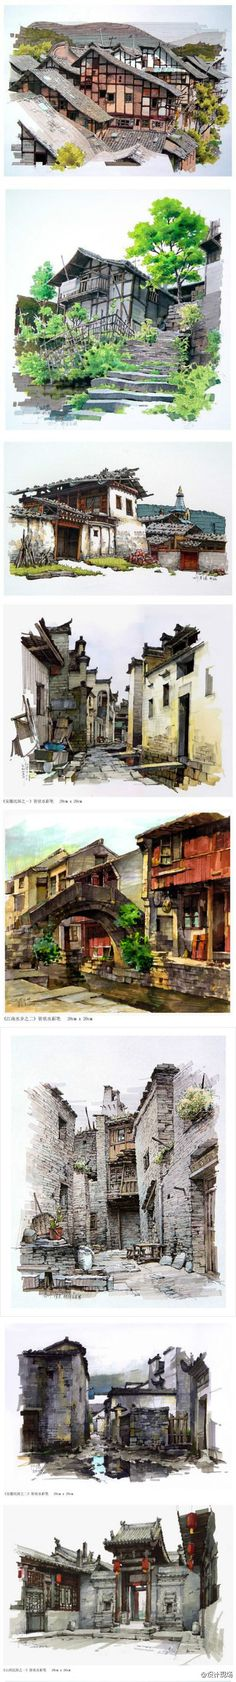 Fine Art Architectural Painting, Artist Study Resources for Art Students, CAPI ::: Create Art Portfolio Ideas at , Inspiration for Art School Portfolio Work, How to Paint Buildings and Architecture Watercolor Architecture, Architecture Drawings, Portfolio D'art, Sketch Painting, Watercolor Painting, Urban Sketching, Environment Design, Environmental Art, Photomontage